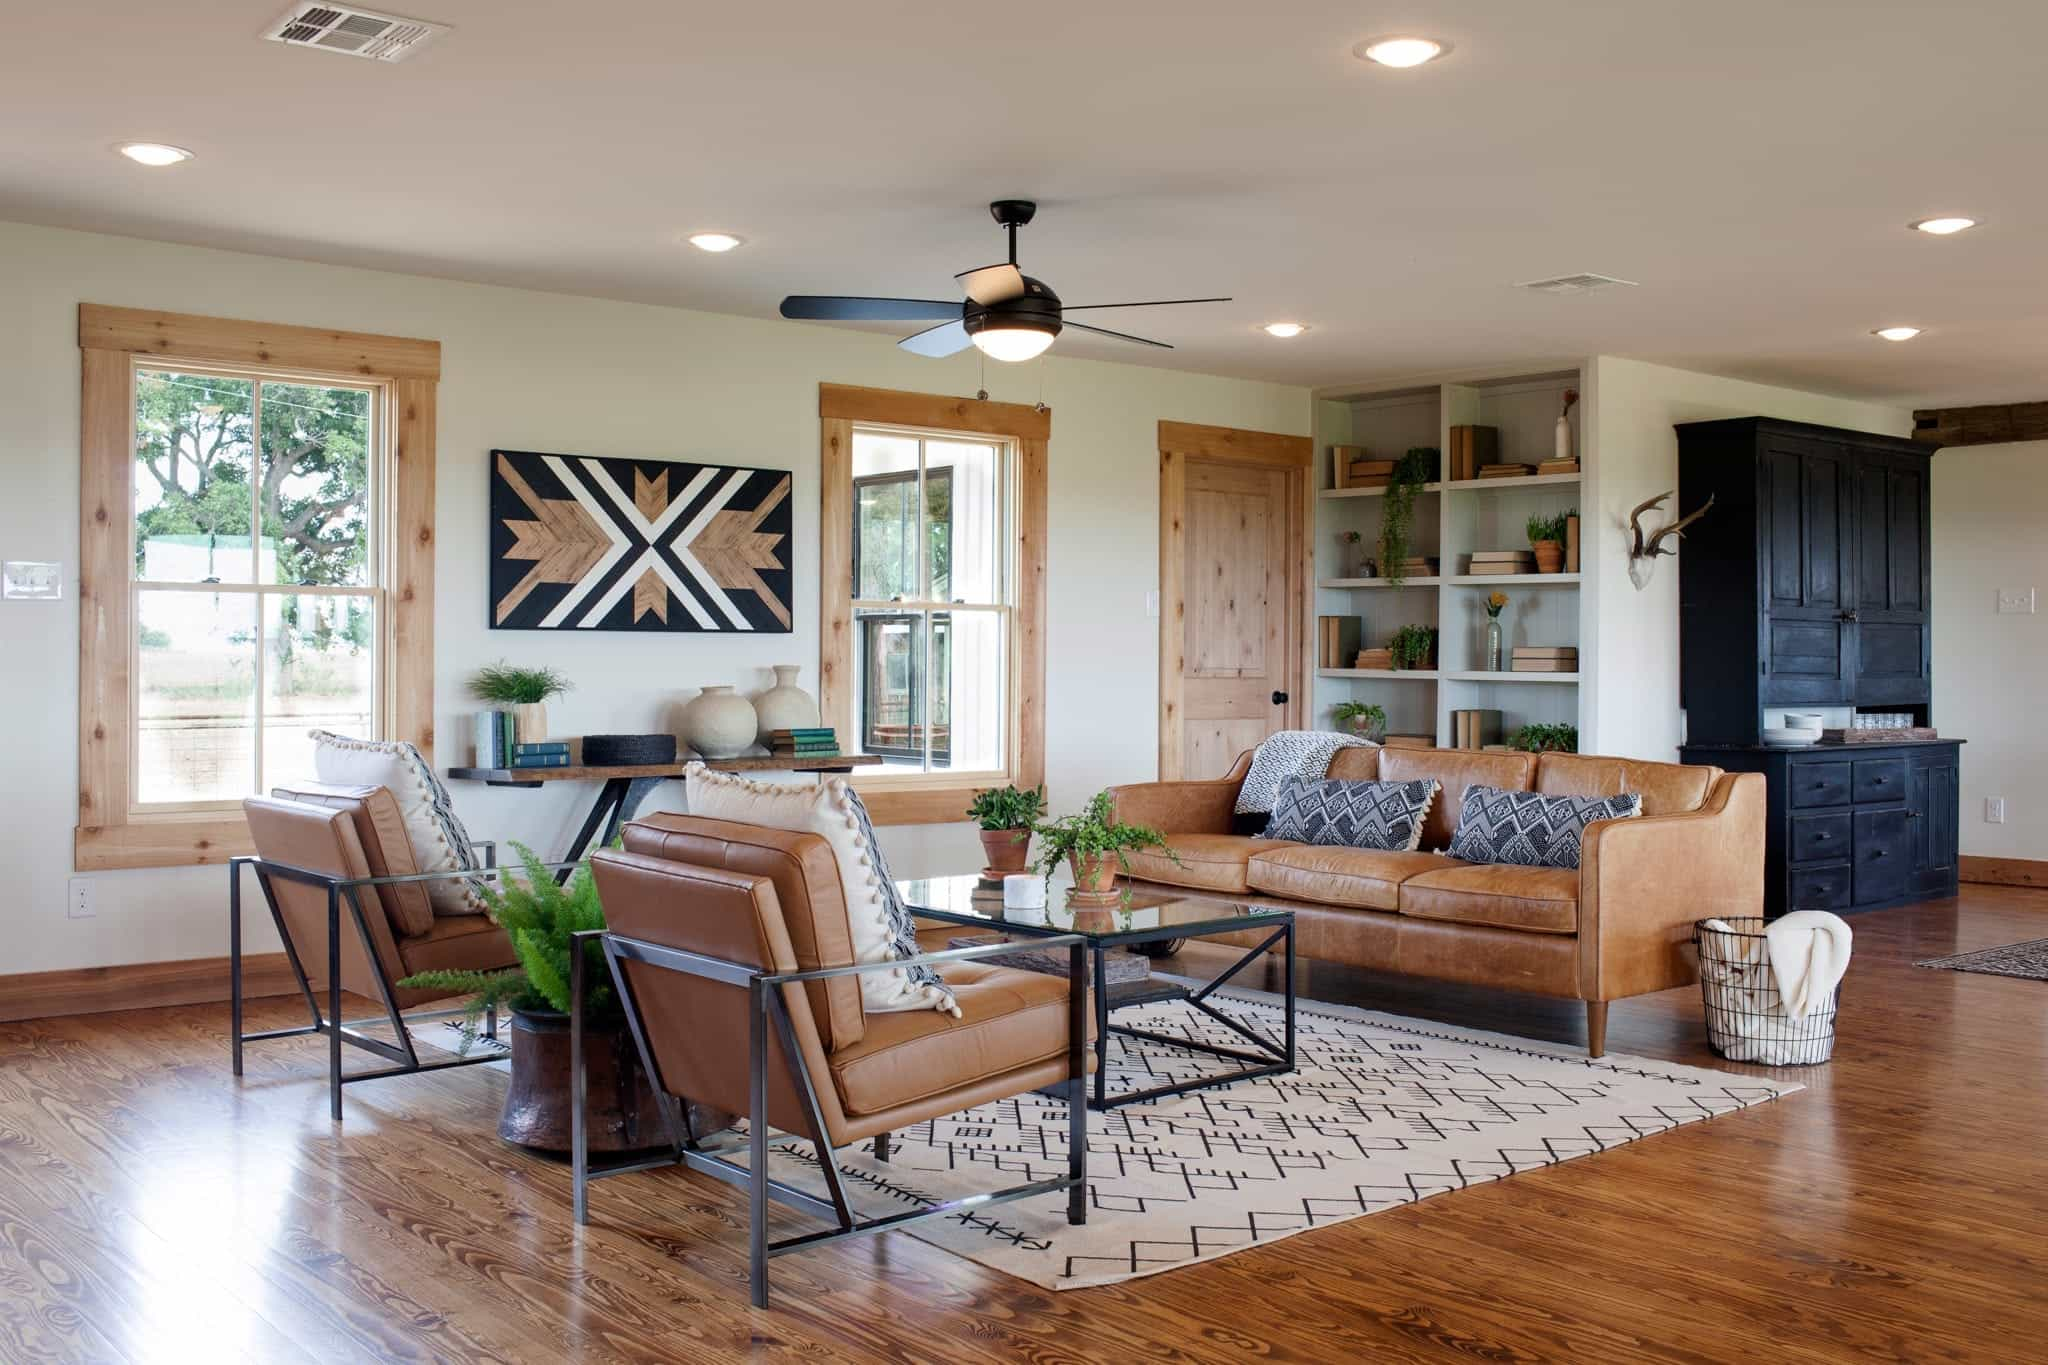 Wood Floors And Graphic Carpet Add Brightness To Living Room (Photo 5 of 13)